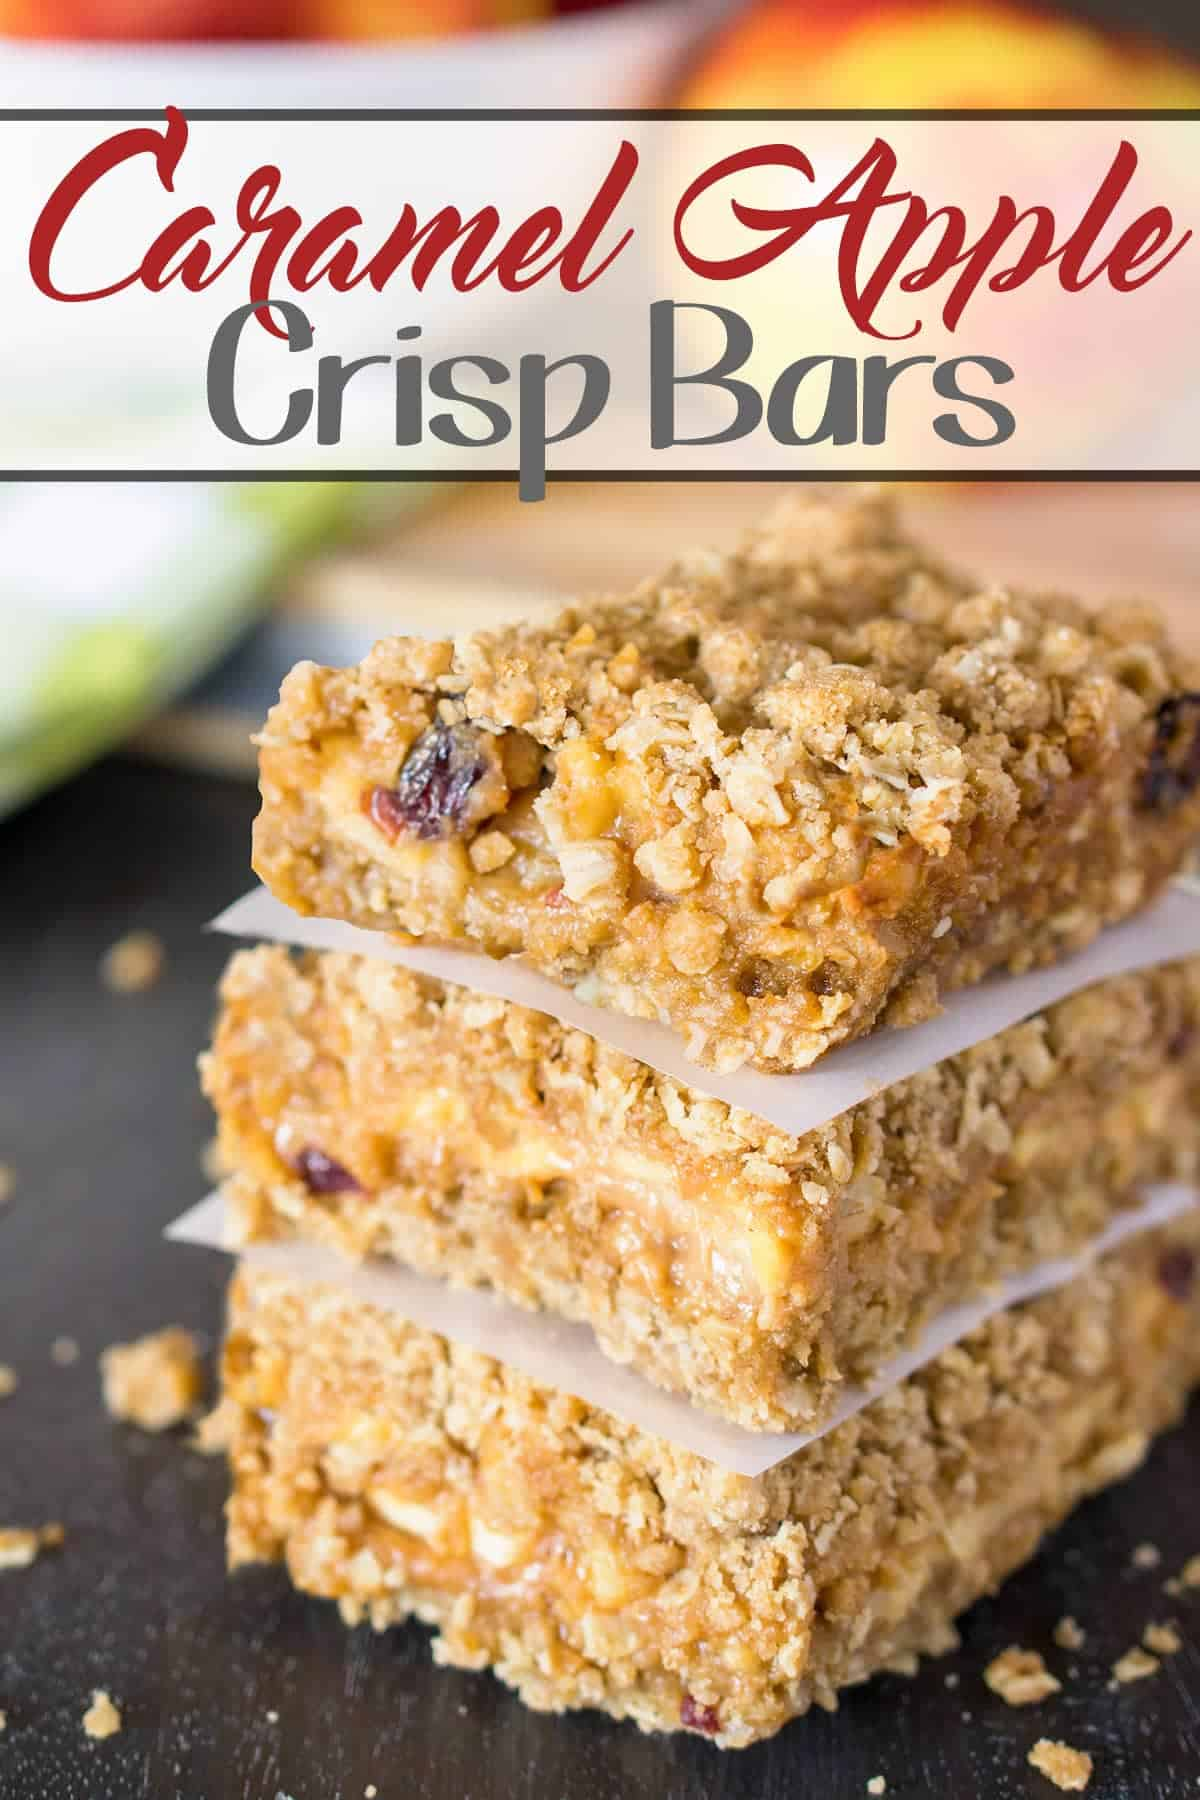 Caramel Apple Bars stacked on parchment paper freshly baked from the oven with post title